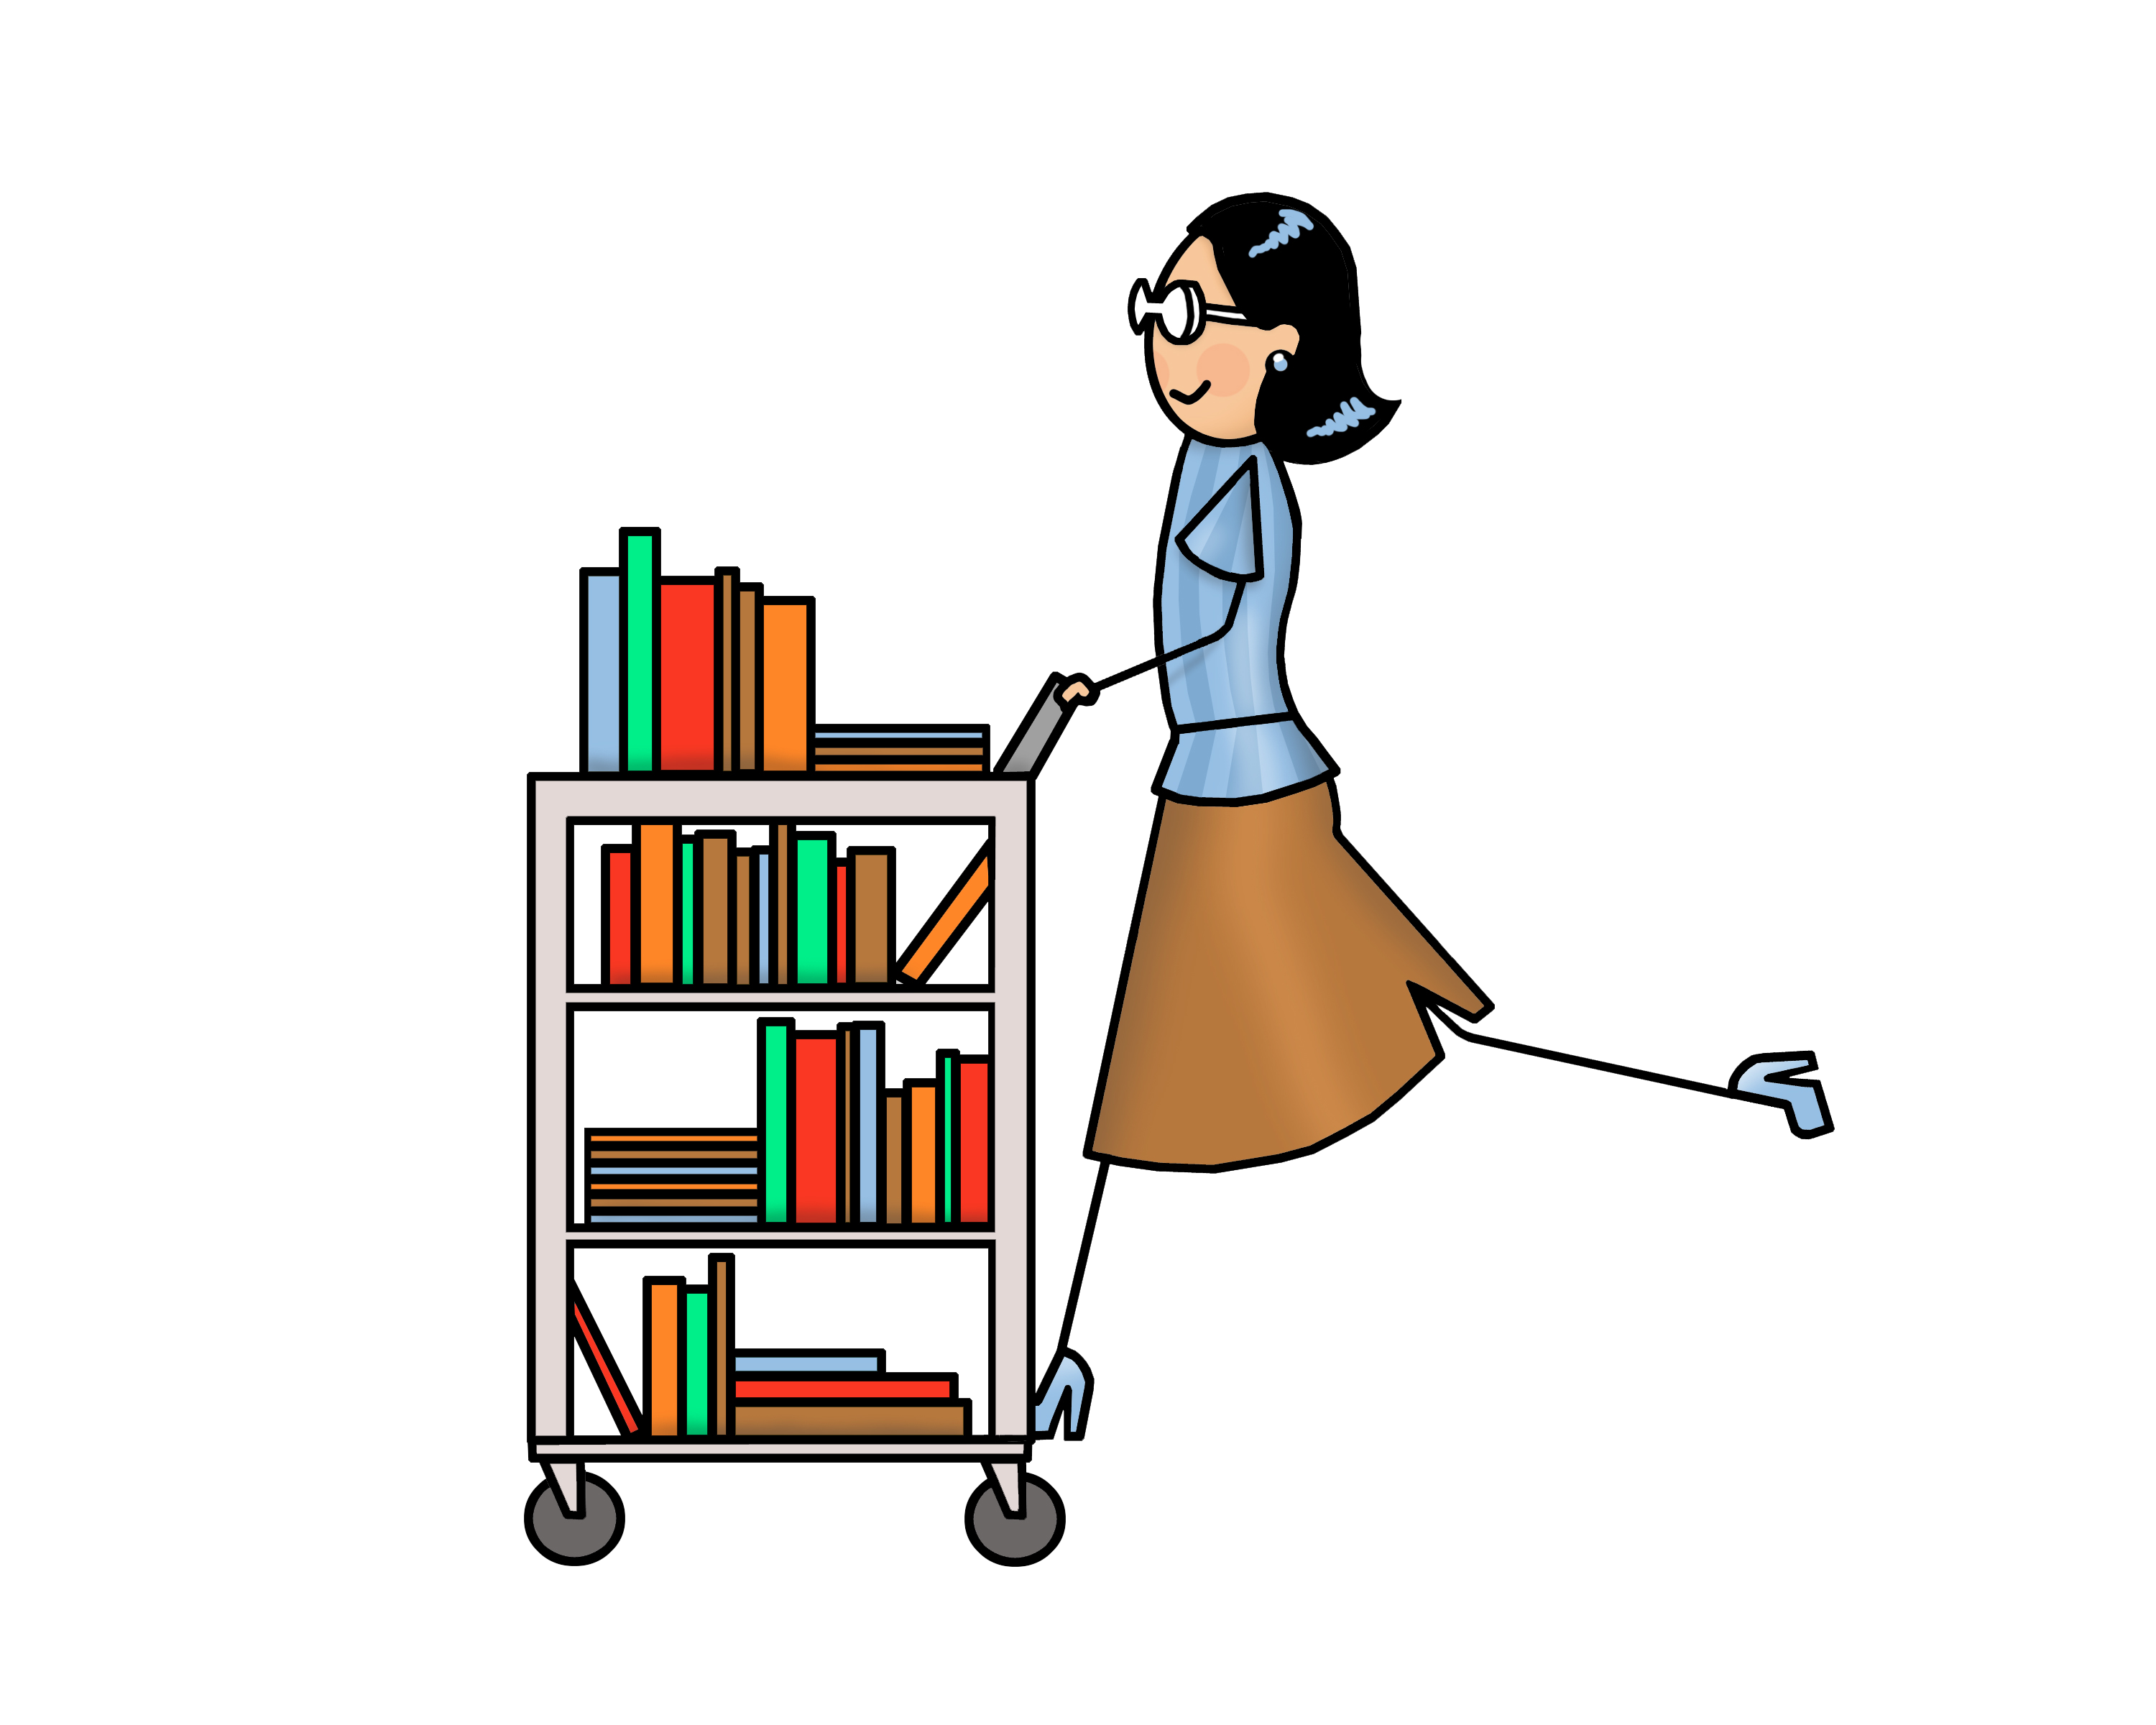 Clipart library librarian. Images clip art cart